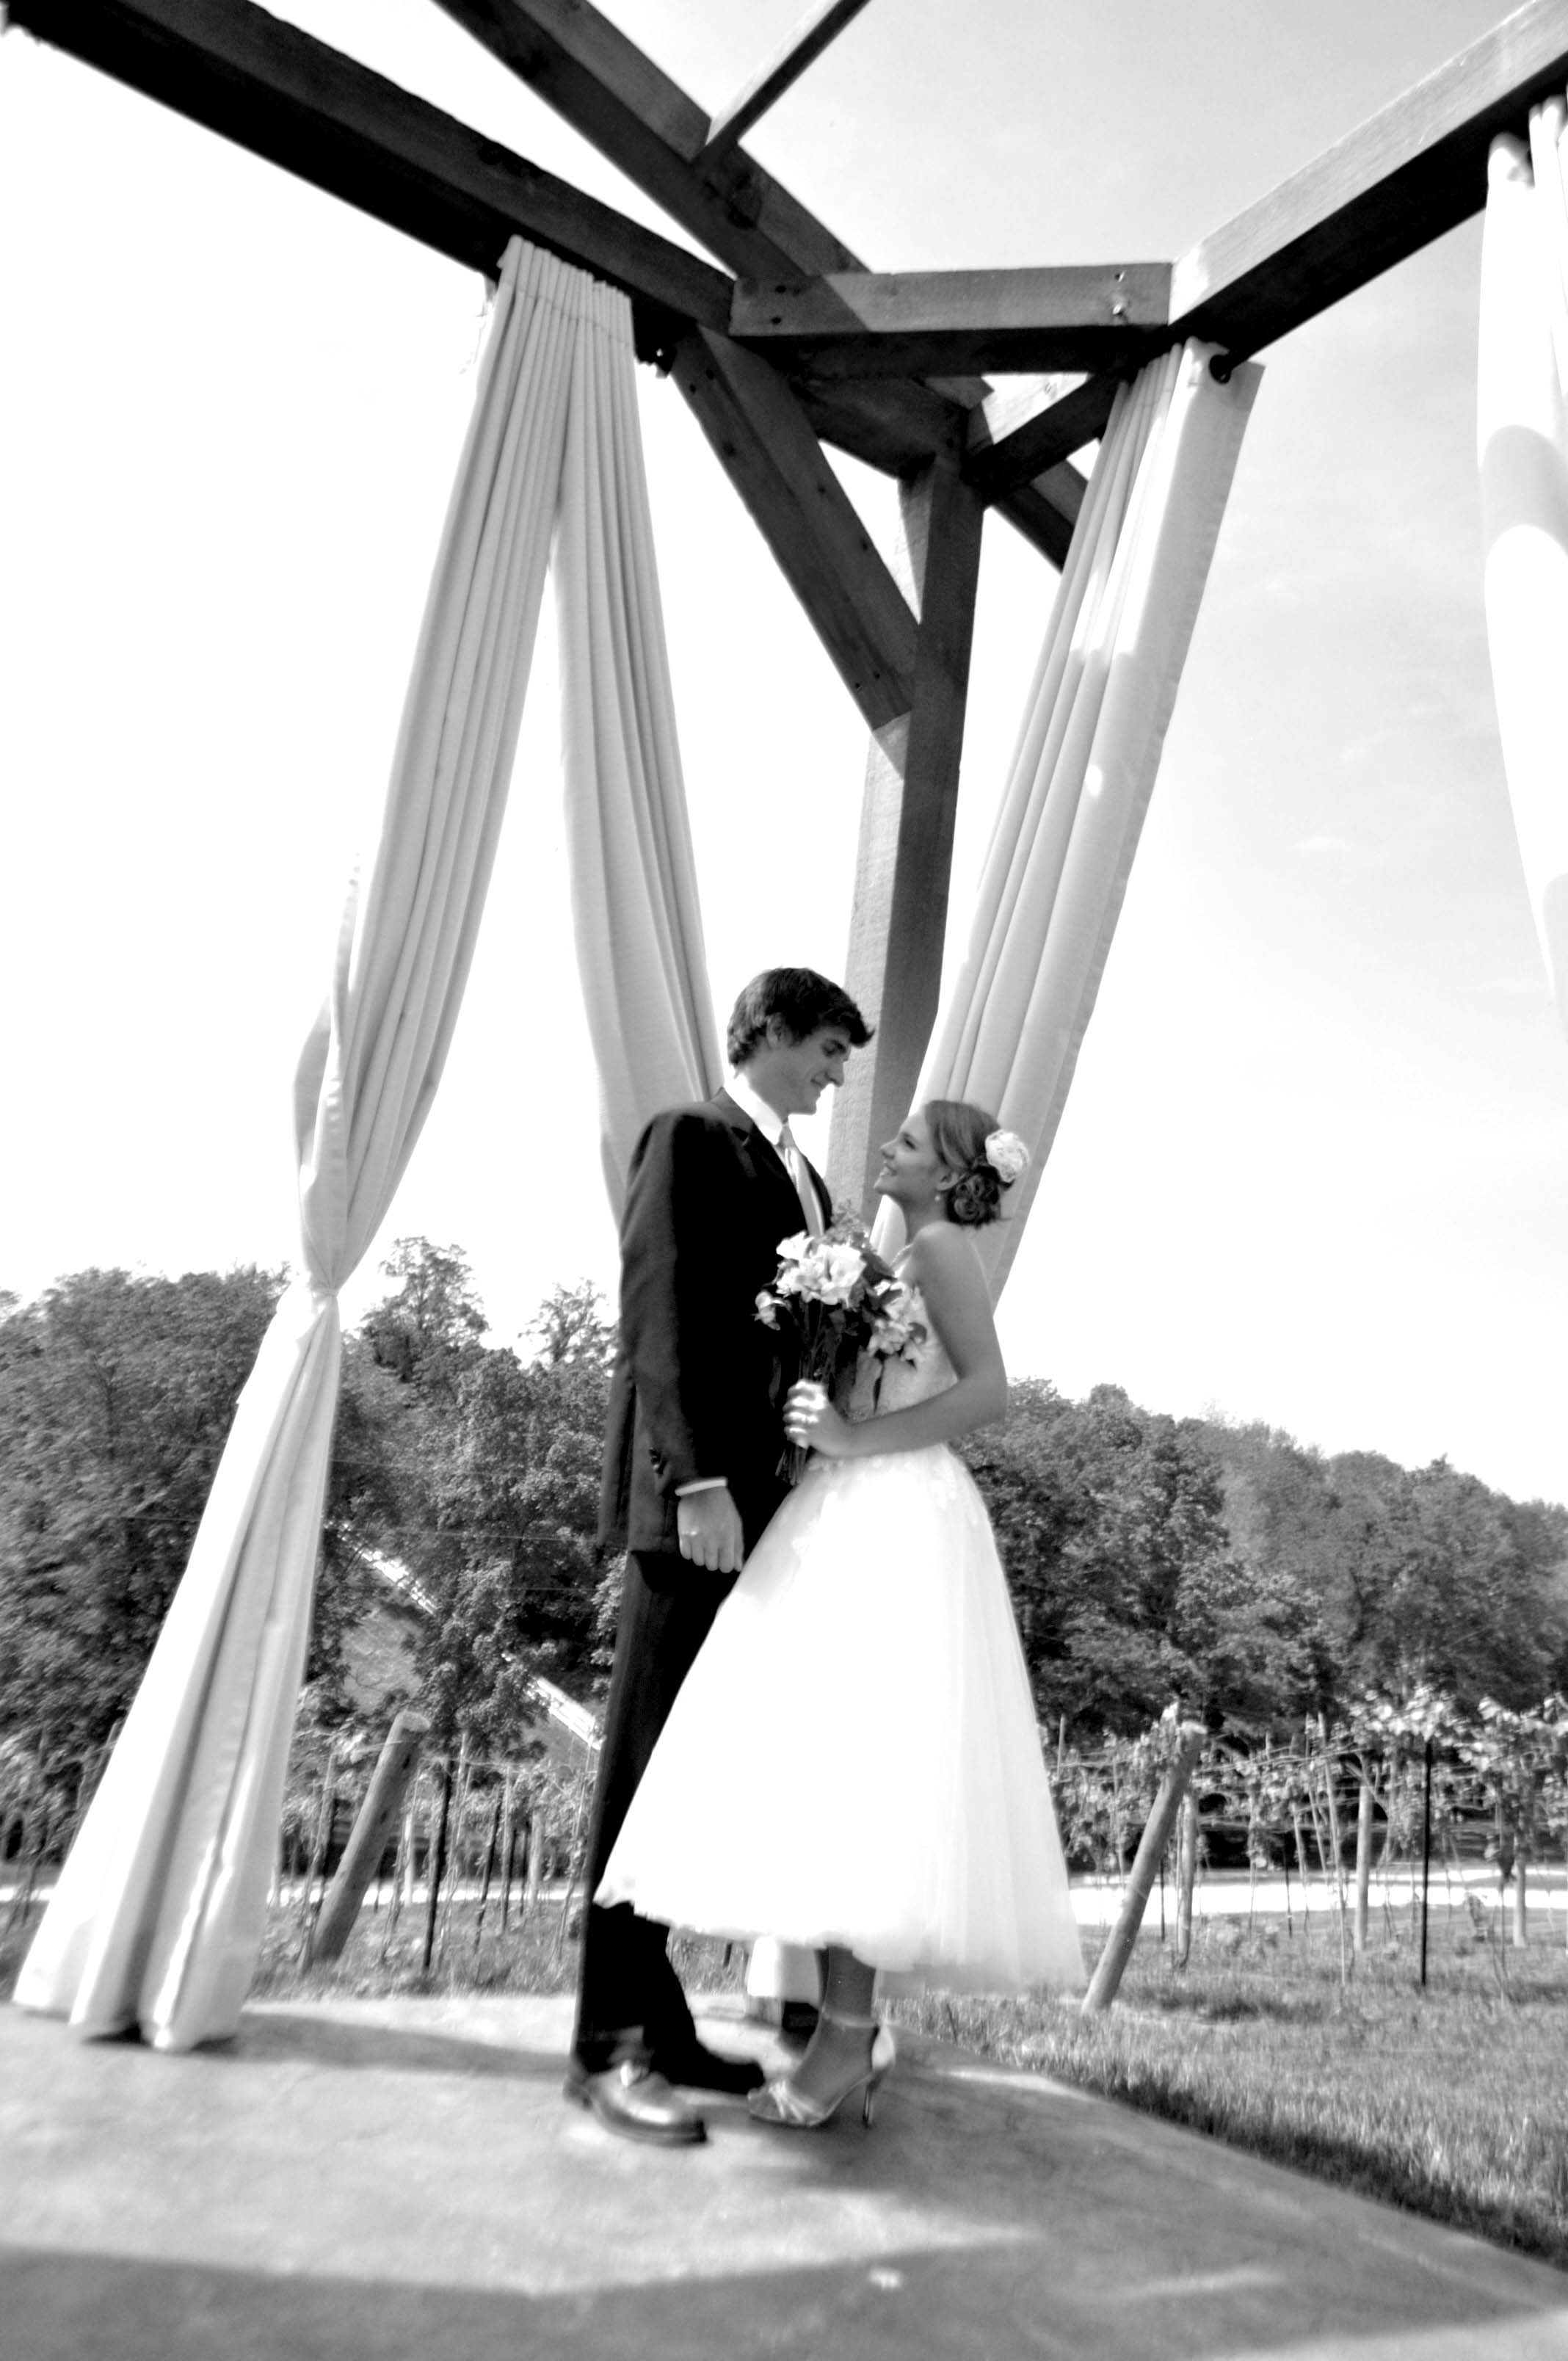 Couple under gazebo in black and white